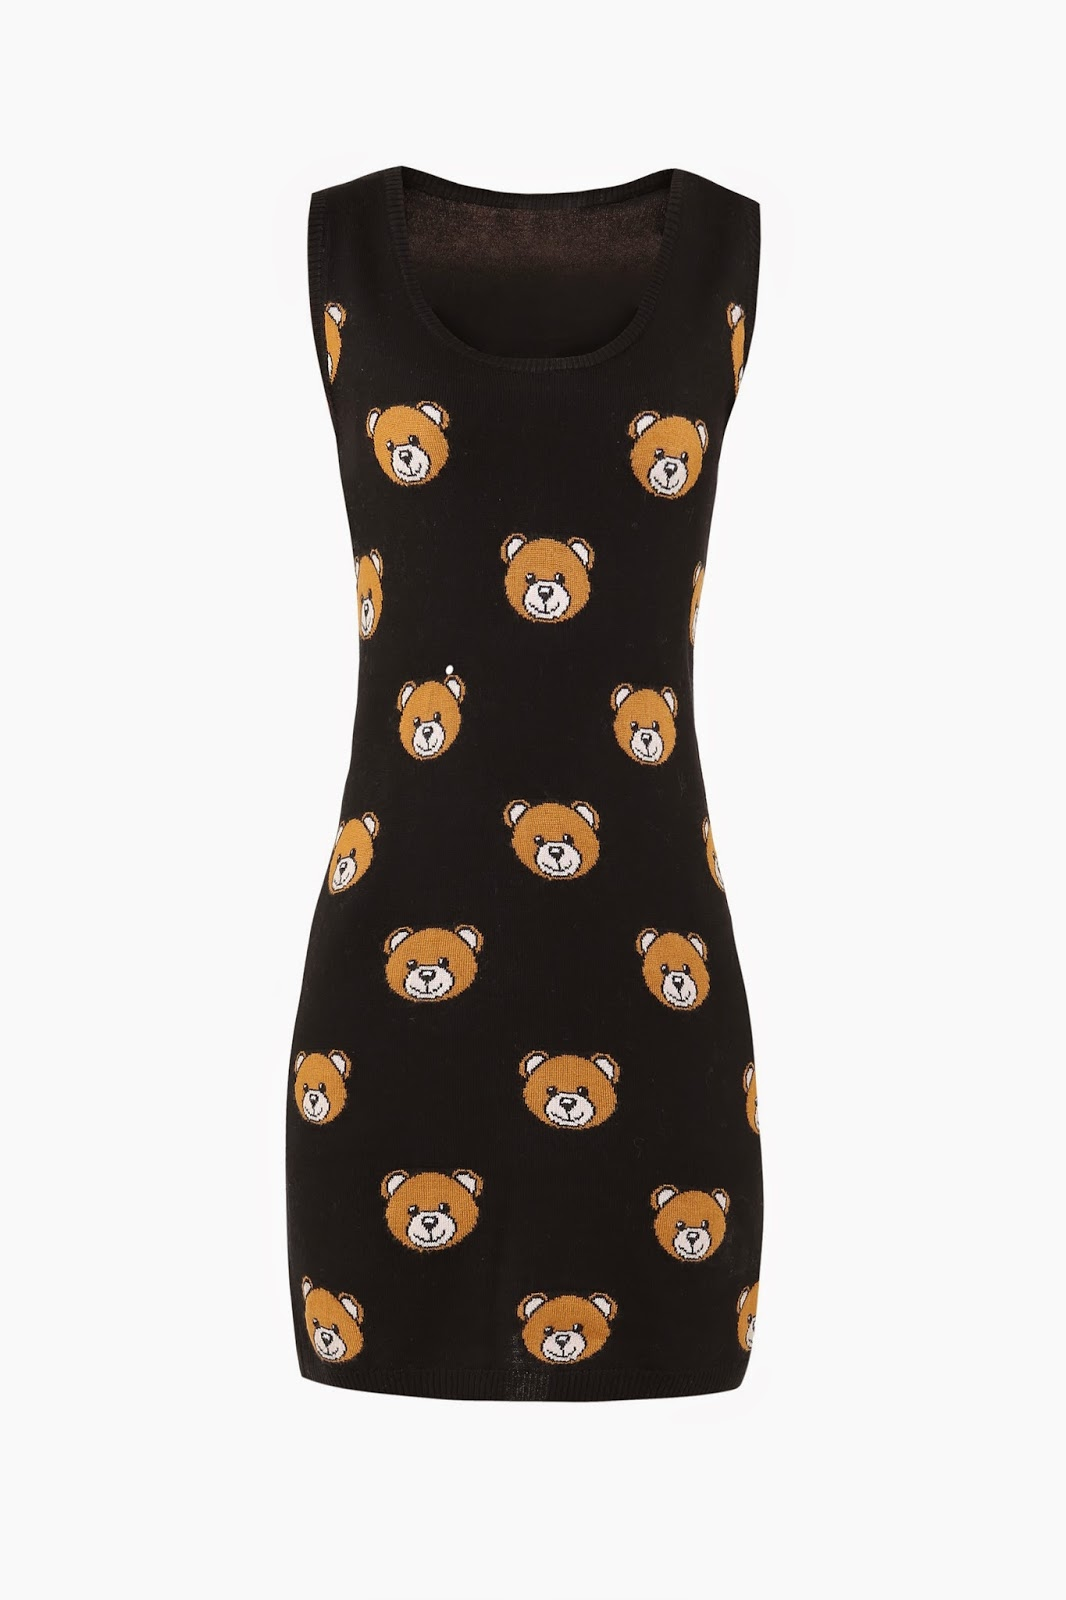 "#MFW: Moschino's ""Ready to Bear"" Capsule Collection for FW15 Available for Purchase!"